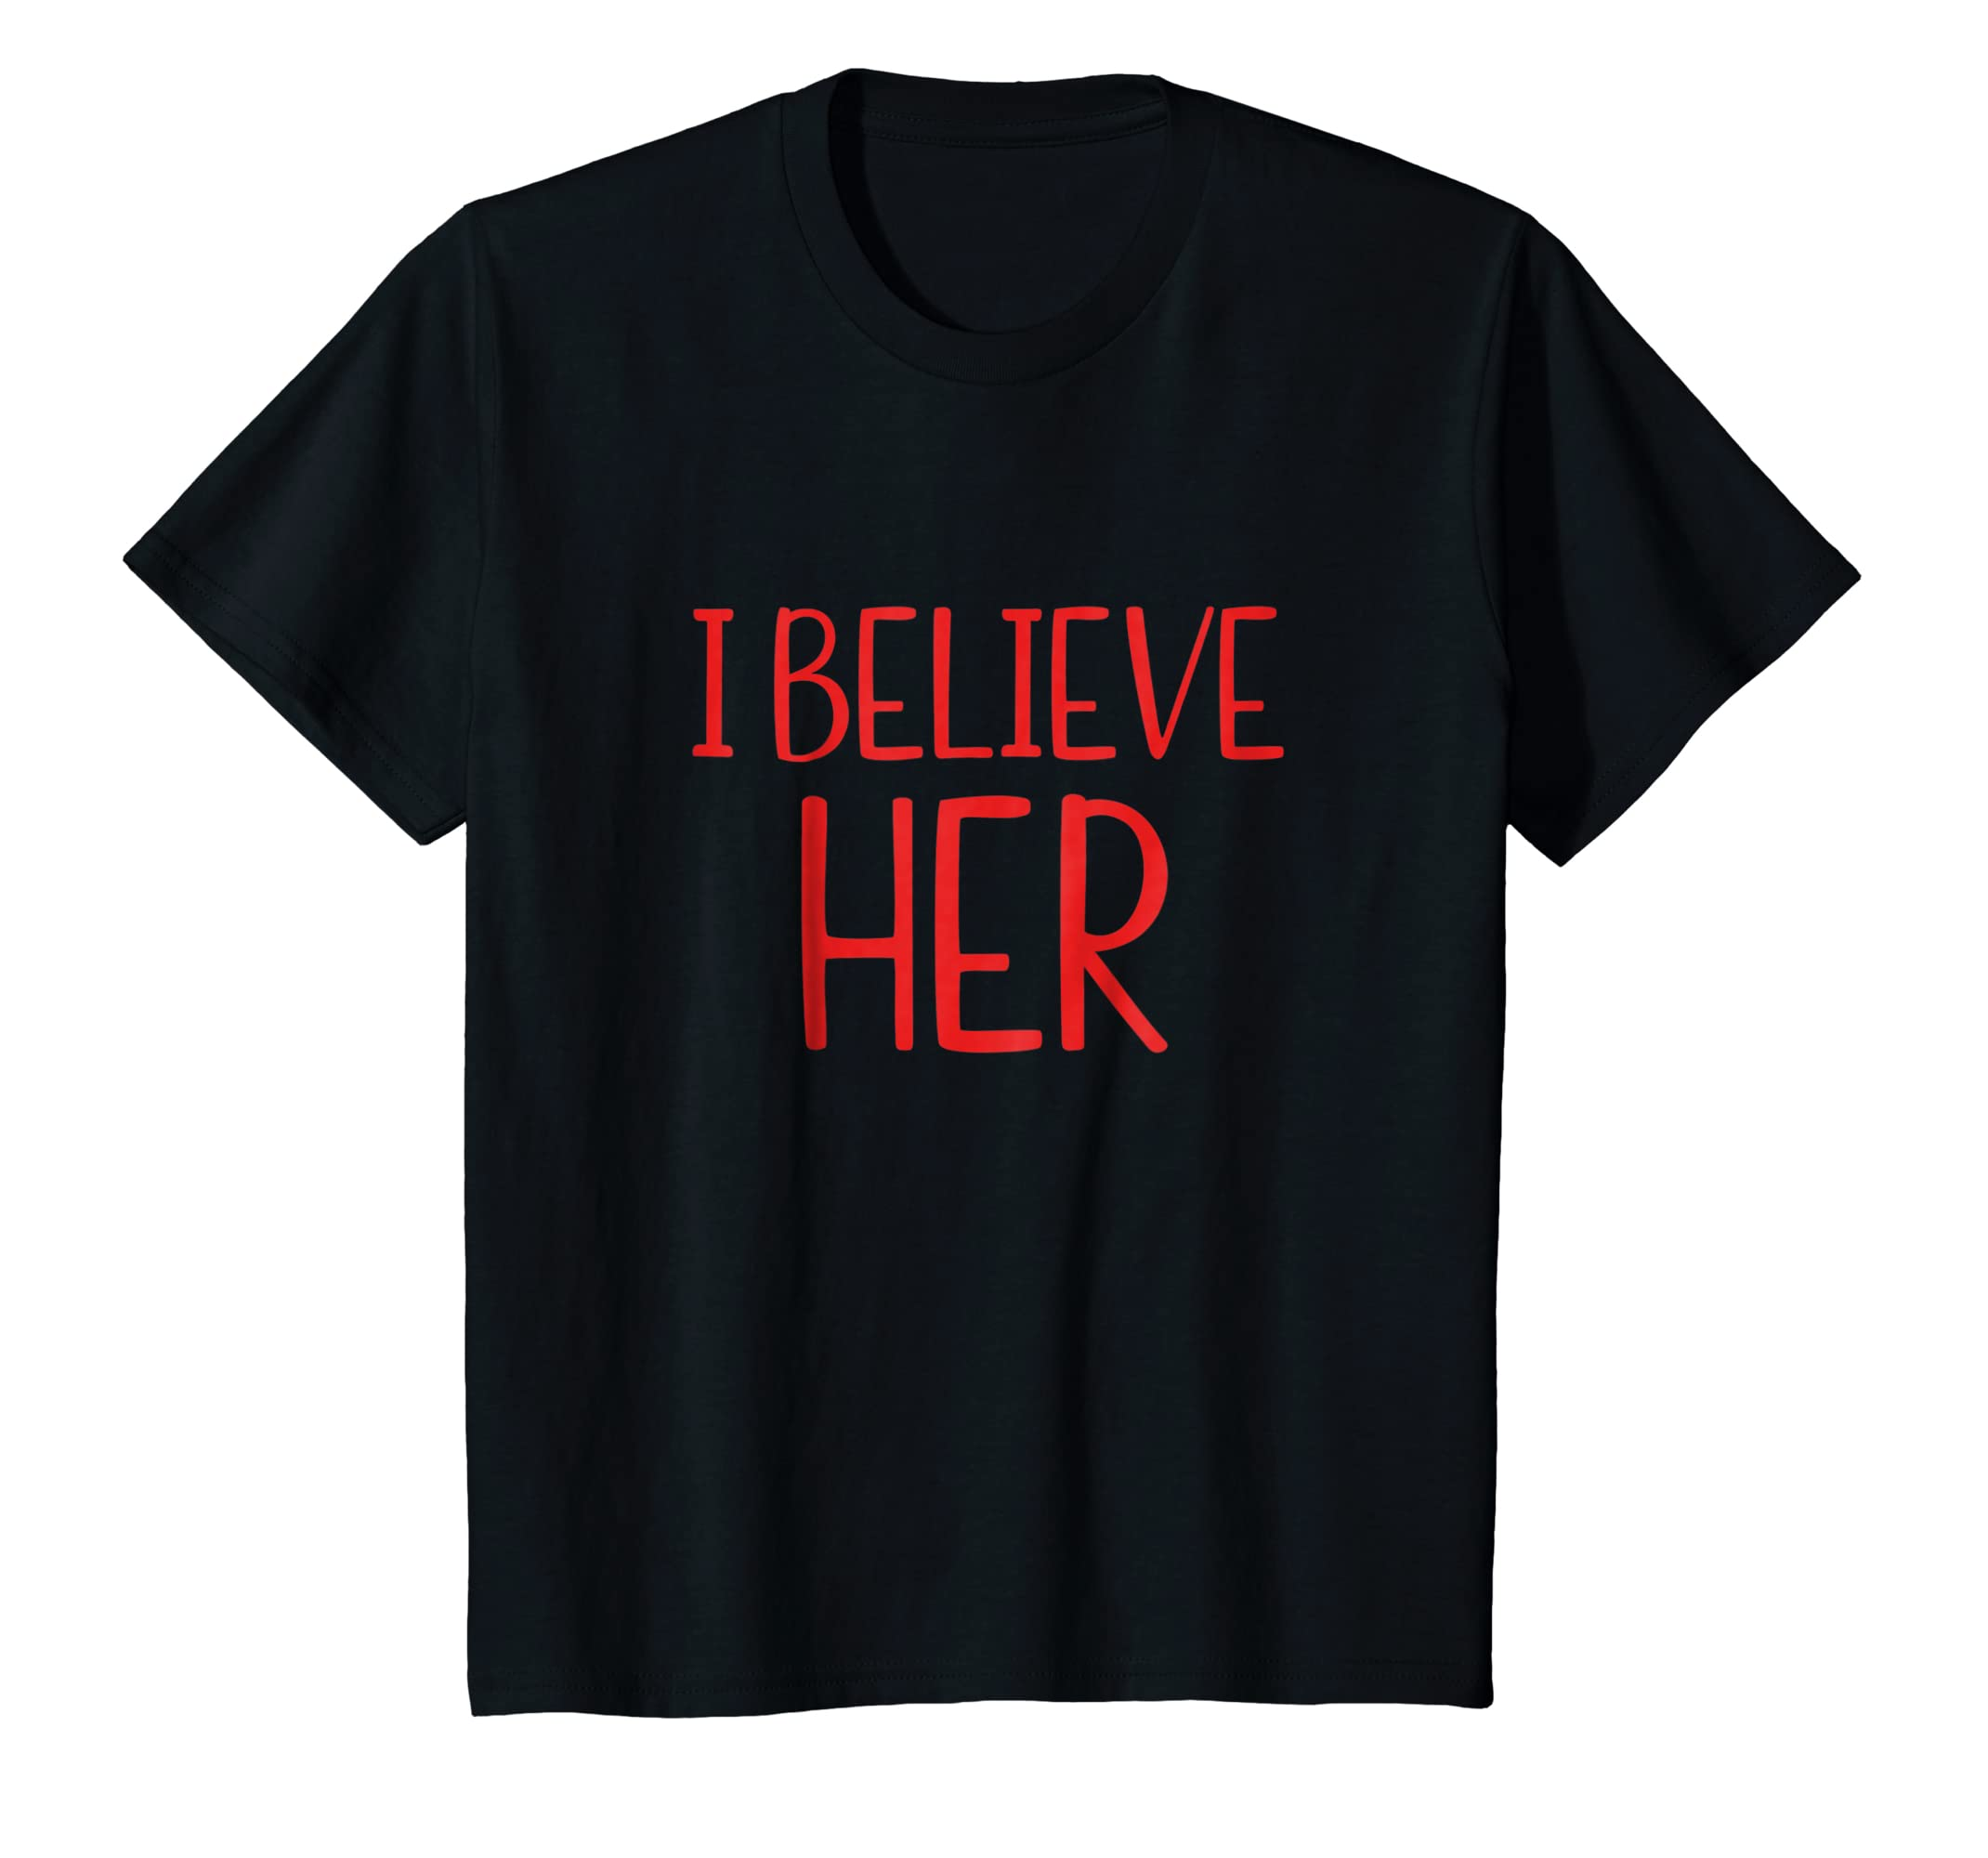 f5f1484c Amazon.com: I Believe Her Shirt #Metoo Movement Shirt Womens Right Tees:  Clothing